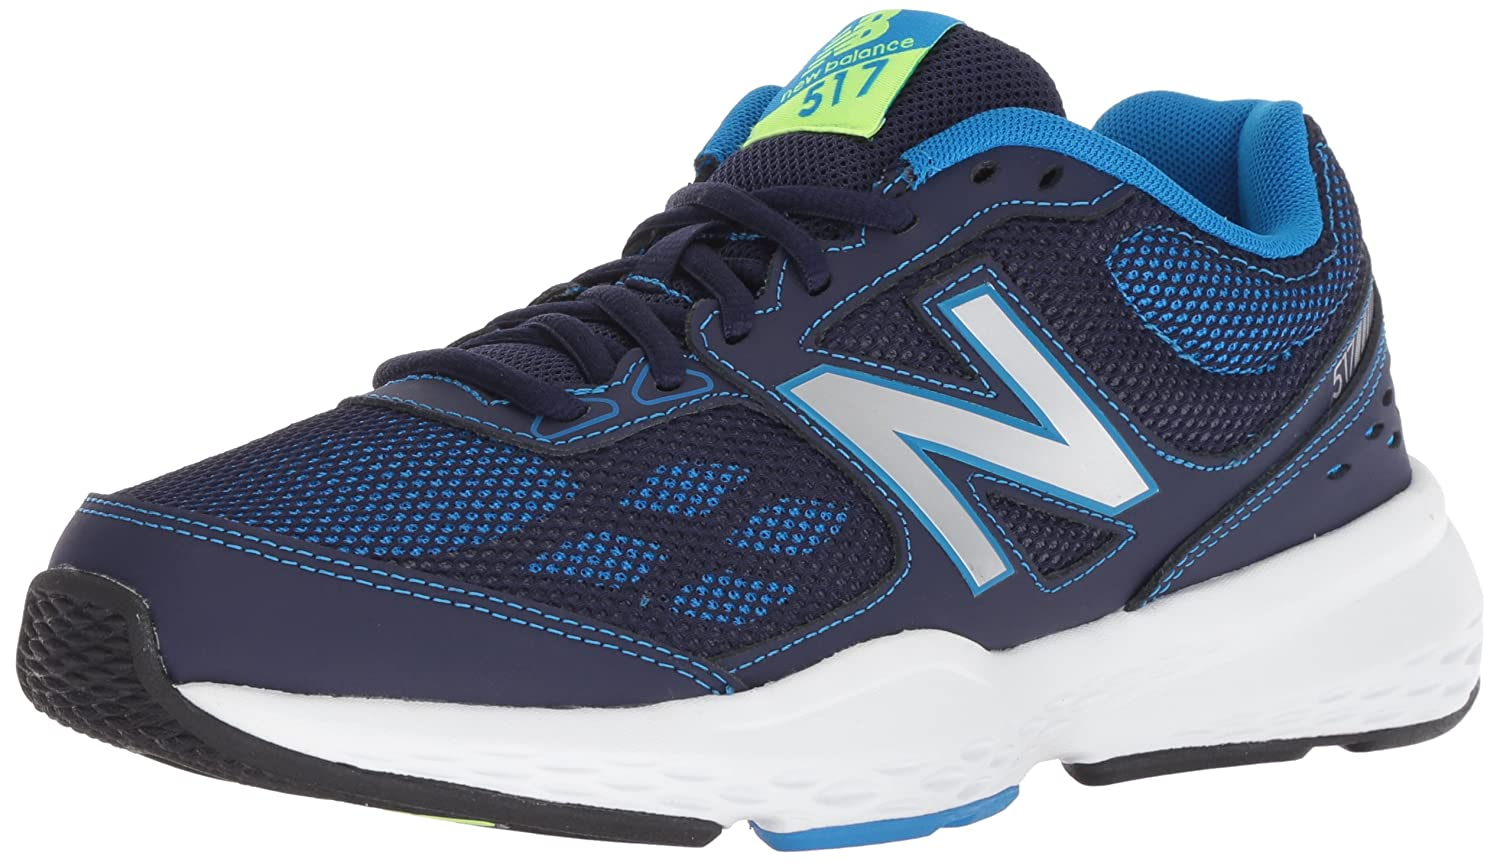 New Balance Men's MX517v1 Training schuhe, Navy, 9 4E US